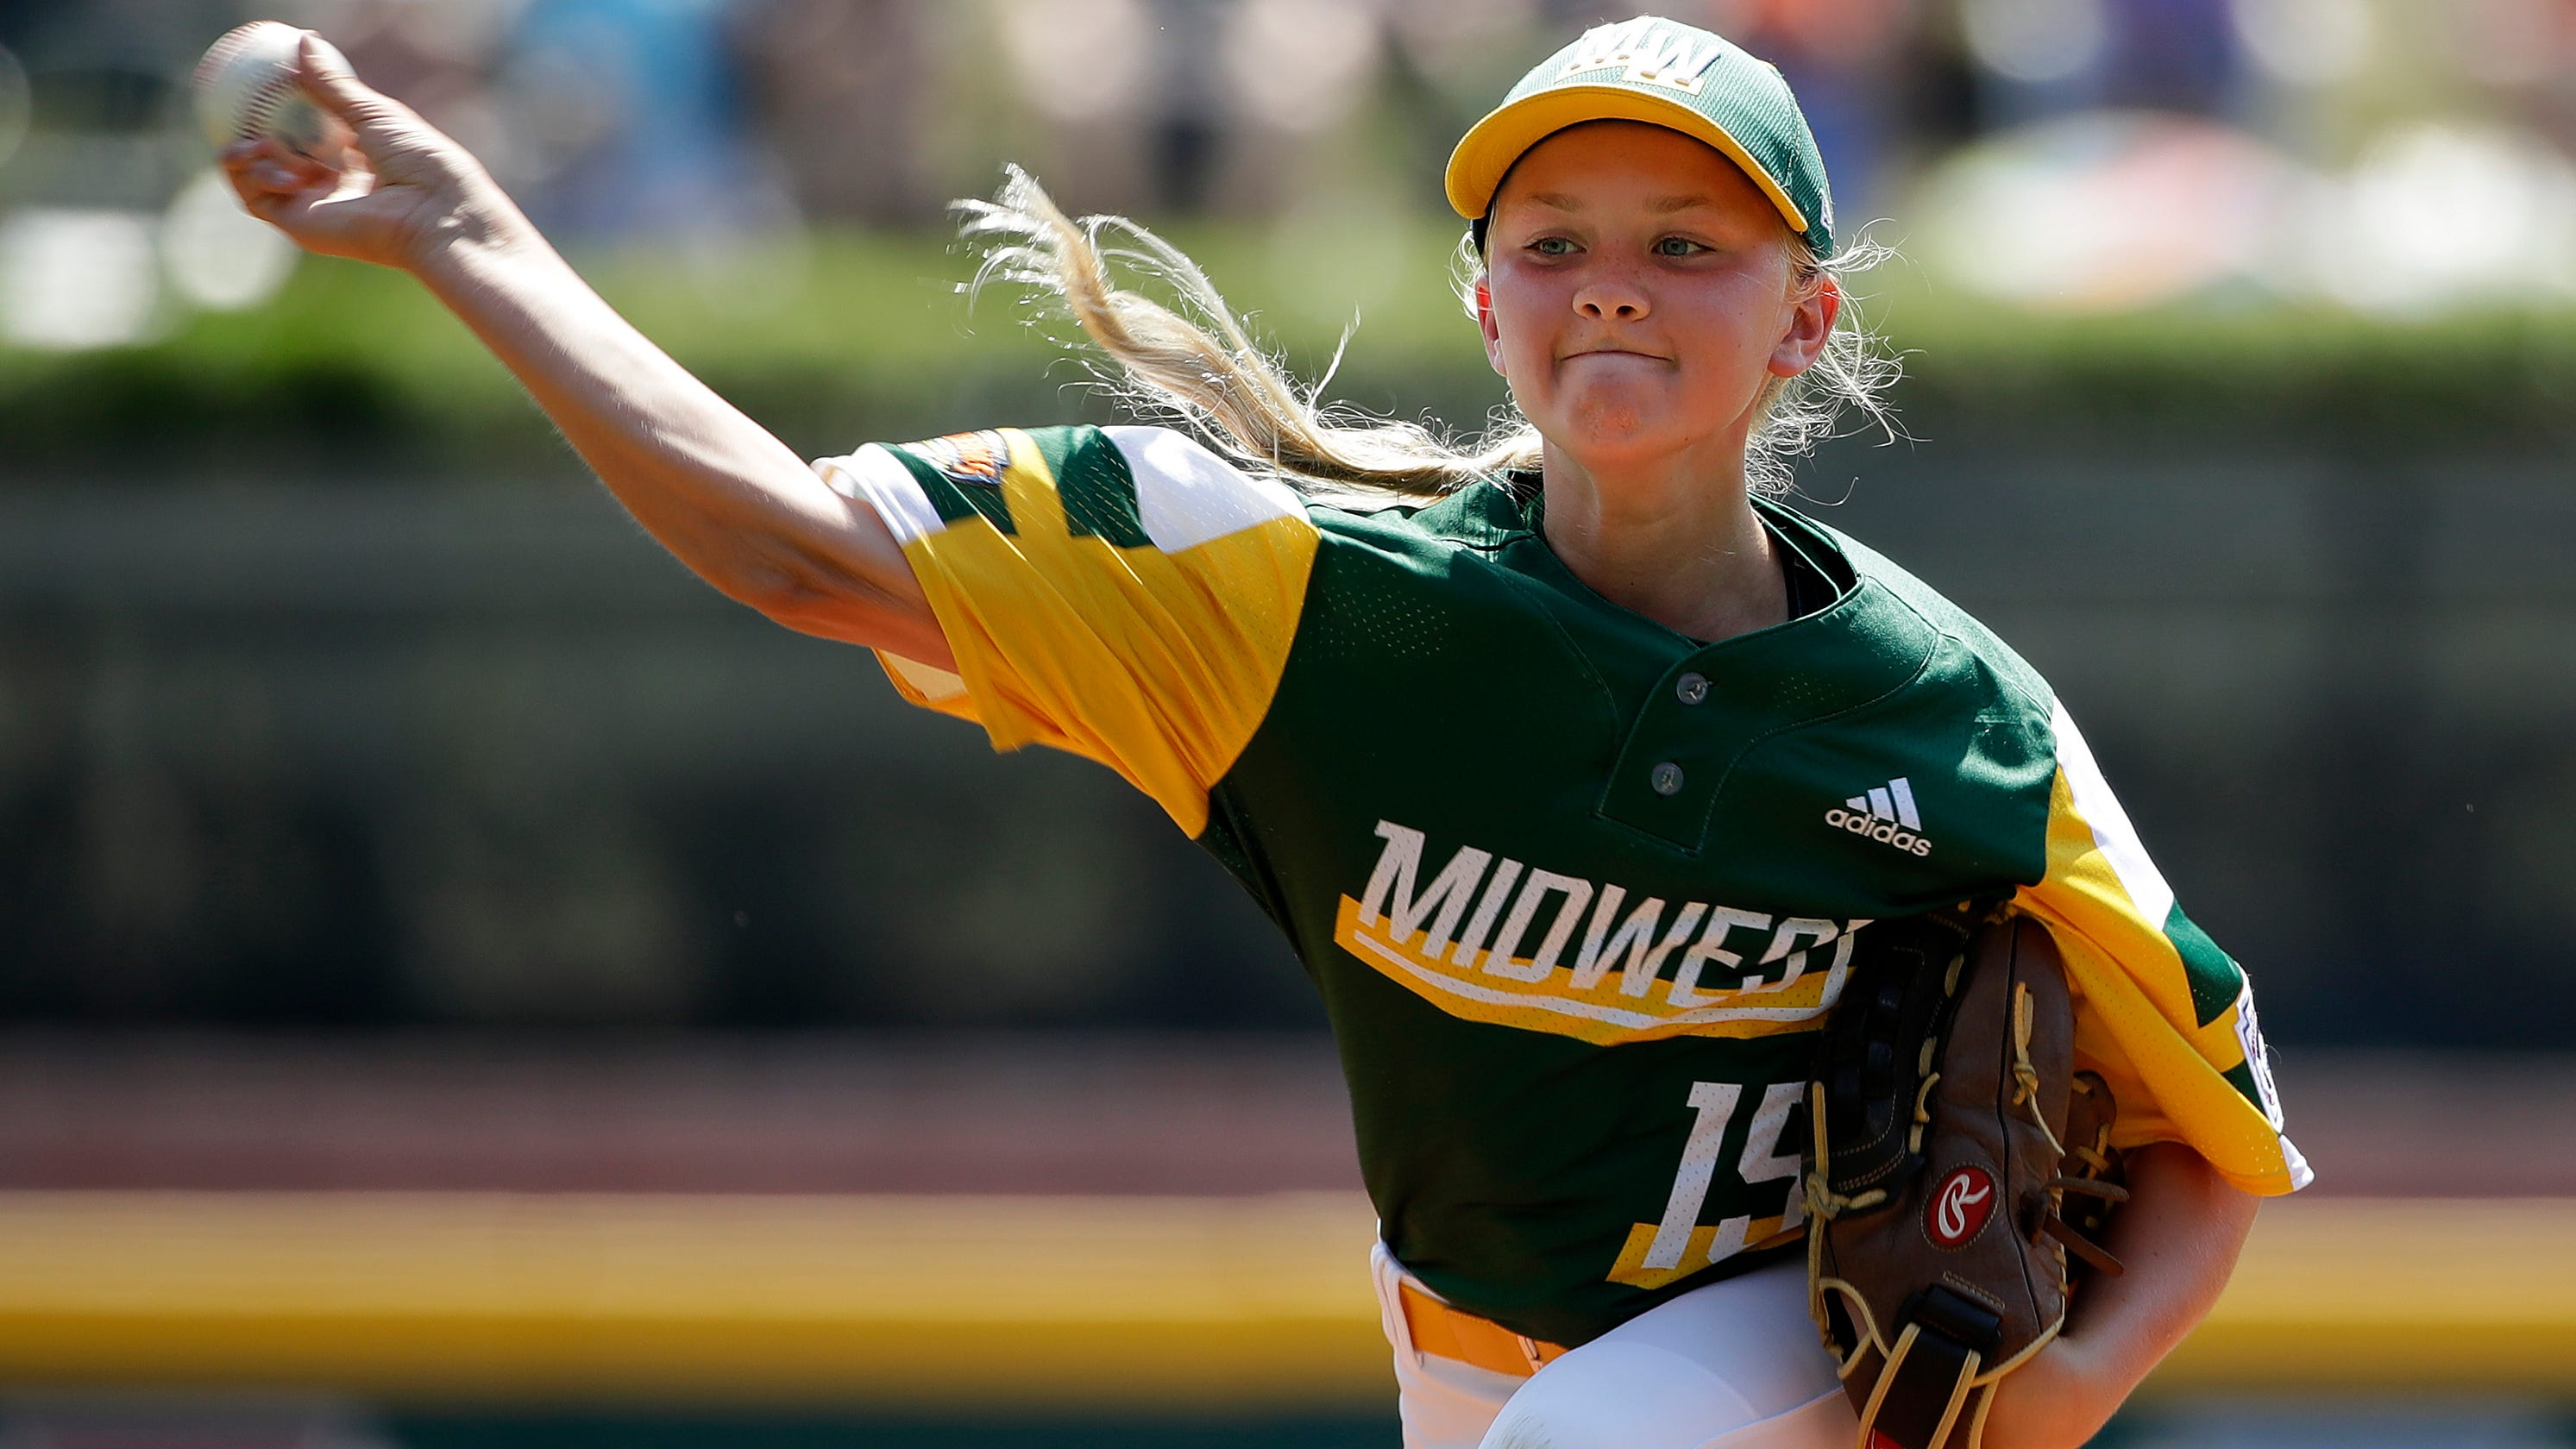 Little League World Series: Maddy Freking makes some history